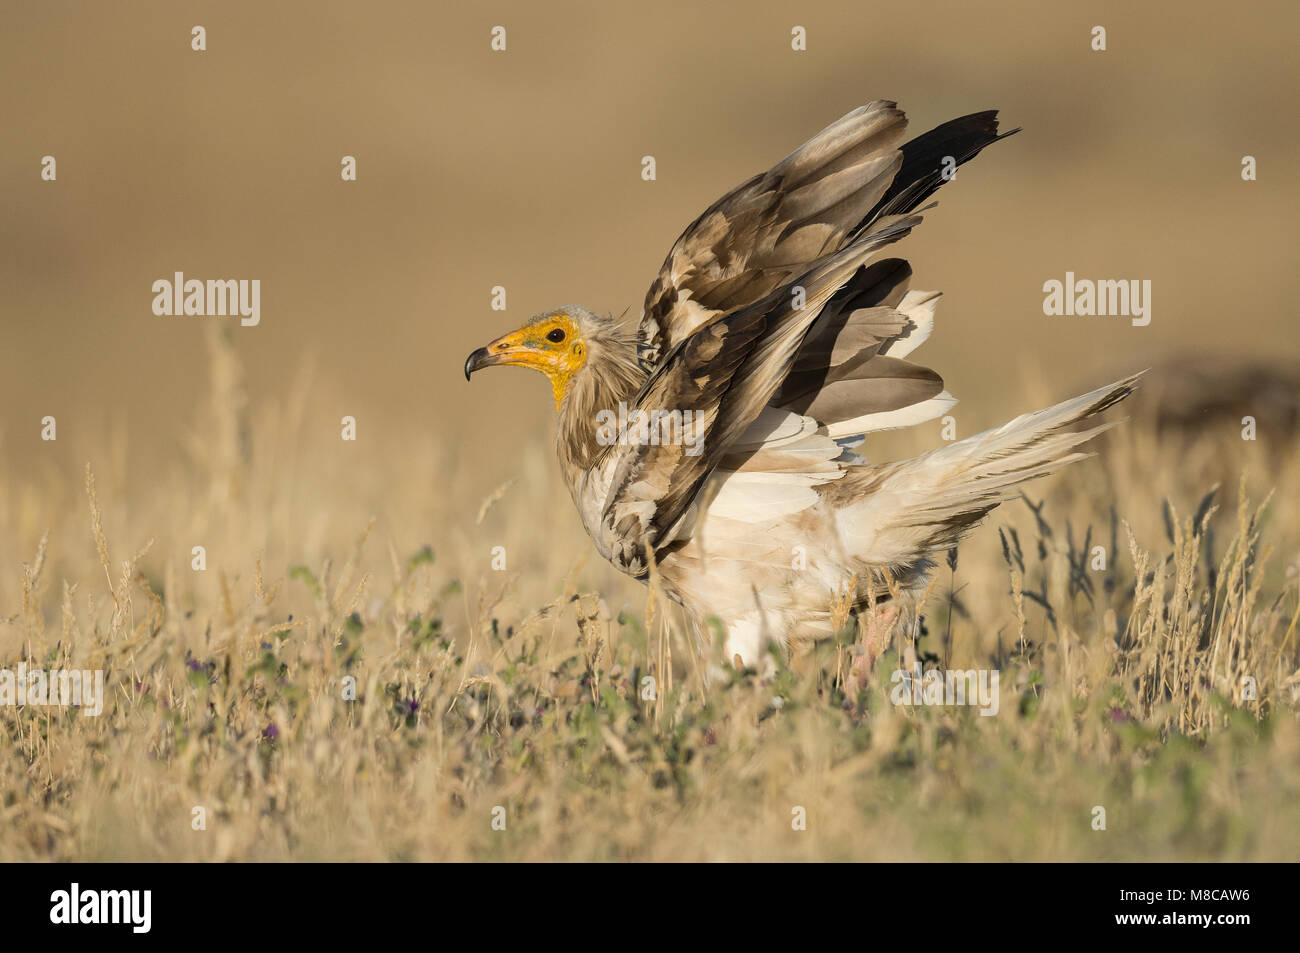 Endangered Egyptian Vulture (Neophron percnopterus) - Stock Image